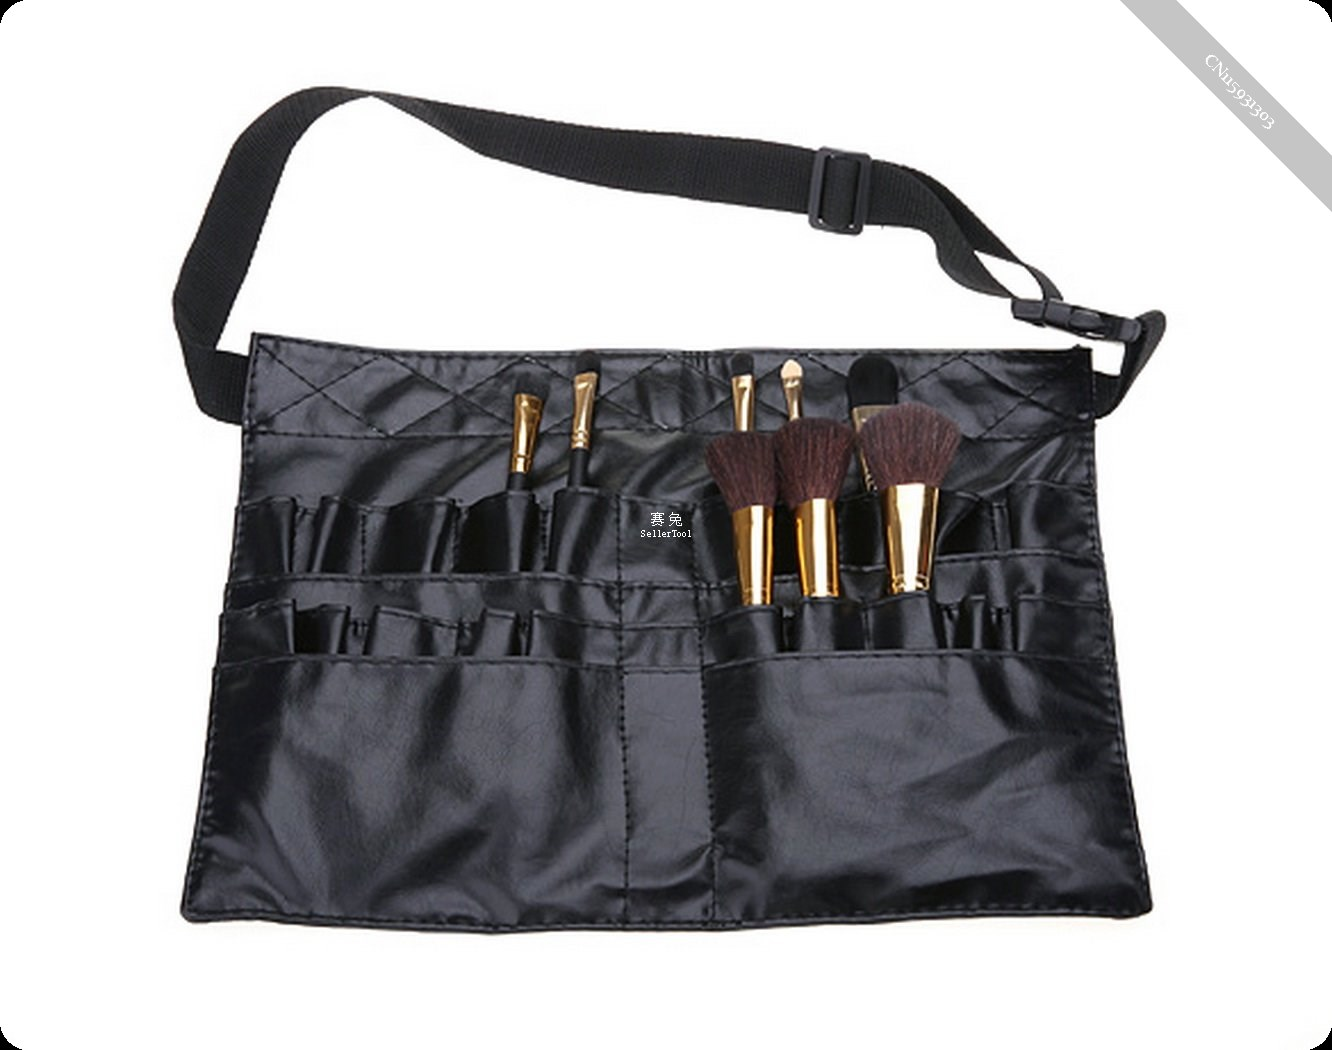 PVC Professional Cosmetic Makeup Brush Apron Bag Artist Belt Strap Holder(China (Mainland))